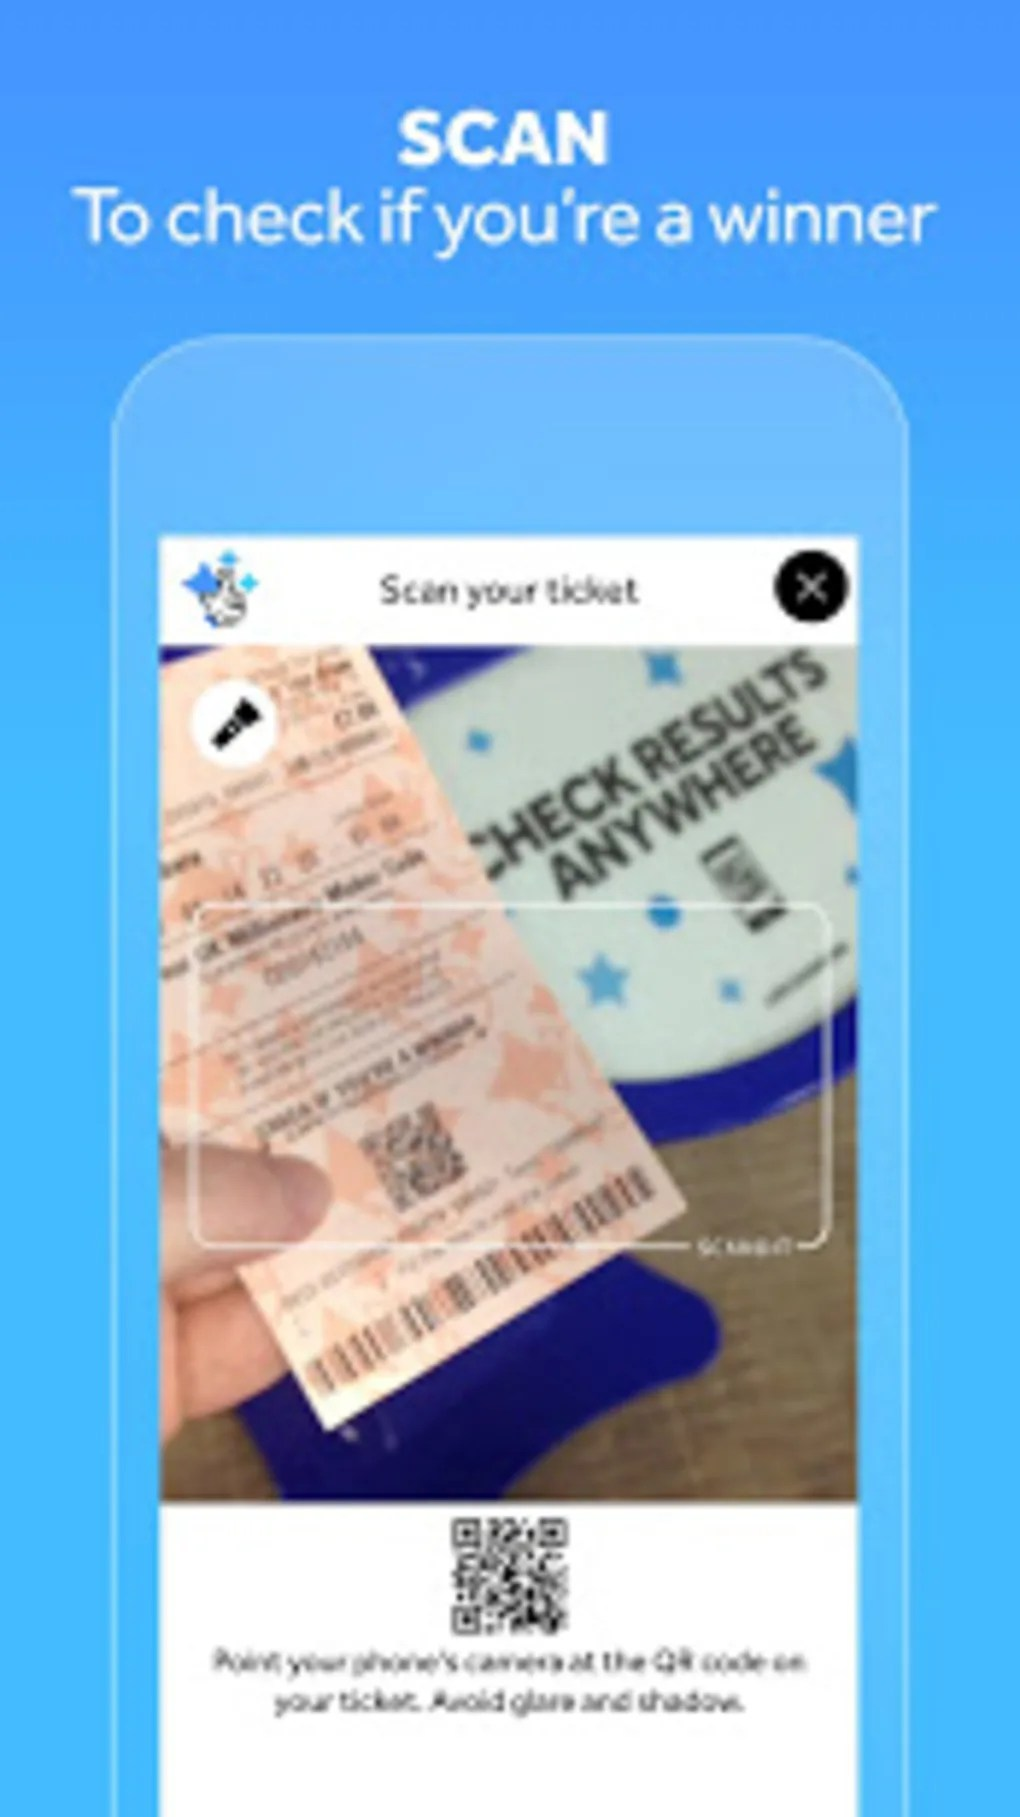 Lotto Euromillions The National Lottery Lotto Euromillions More For Android Download